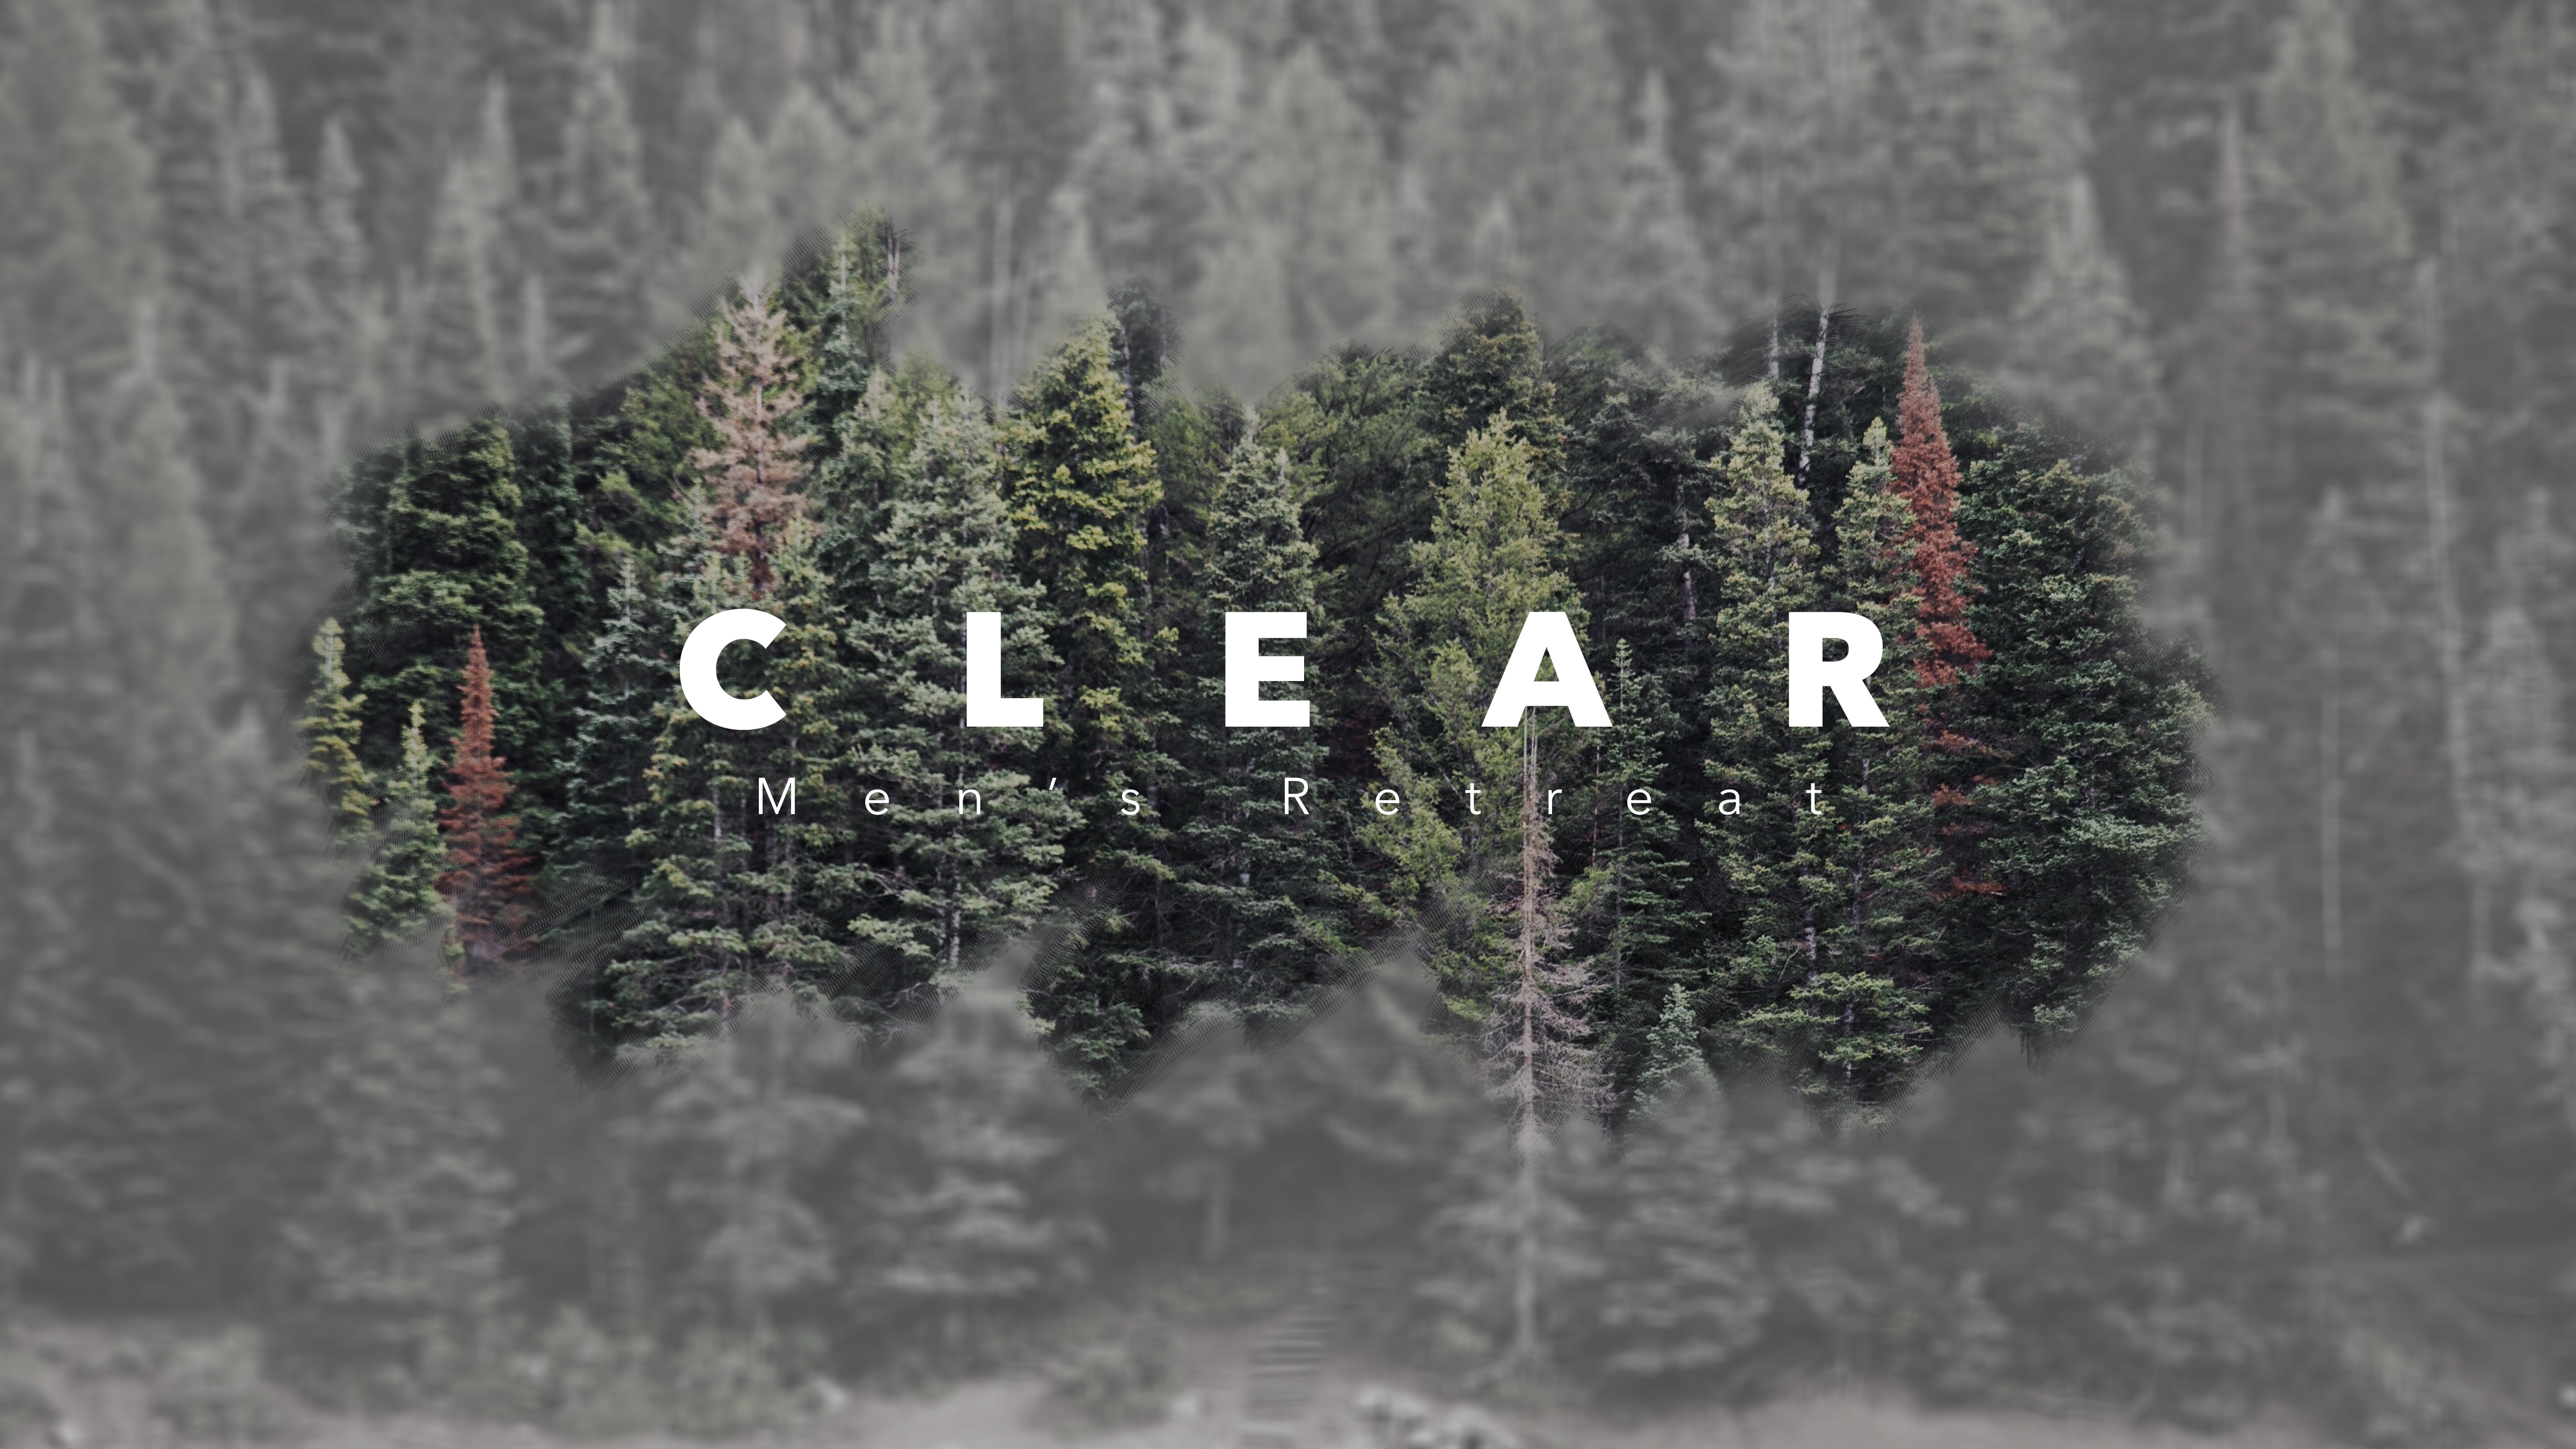 Static clear men s retreat graphic 2